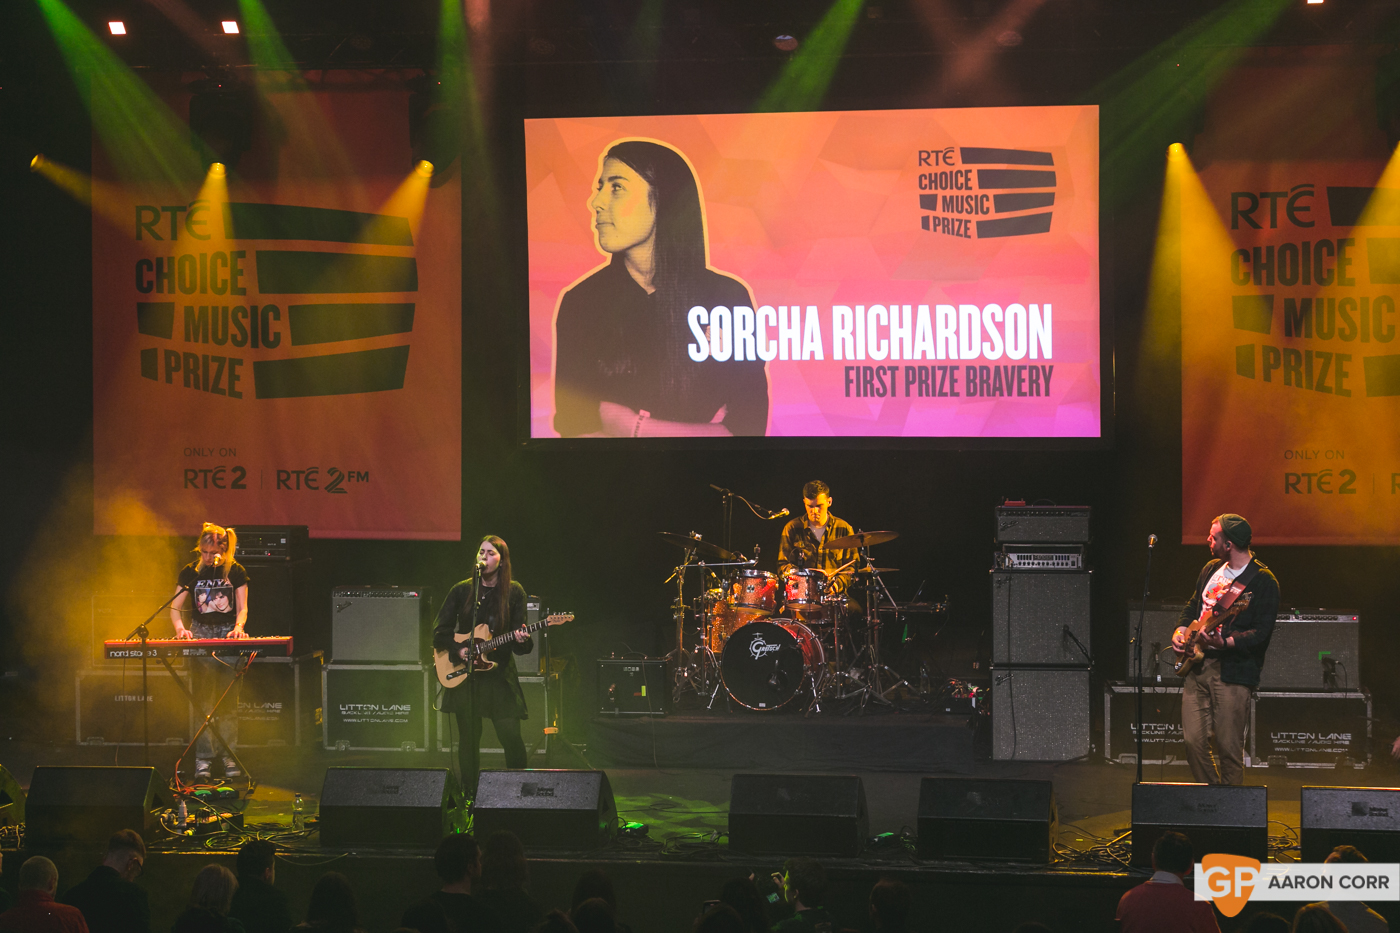 Sorcha Richardson at Choice Music Prize 2020 in Vicar Street, Dublin on 05-Mar-20 by Aaron Corr-5312